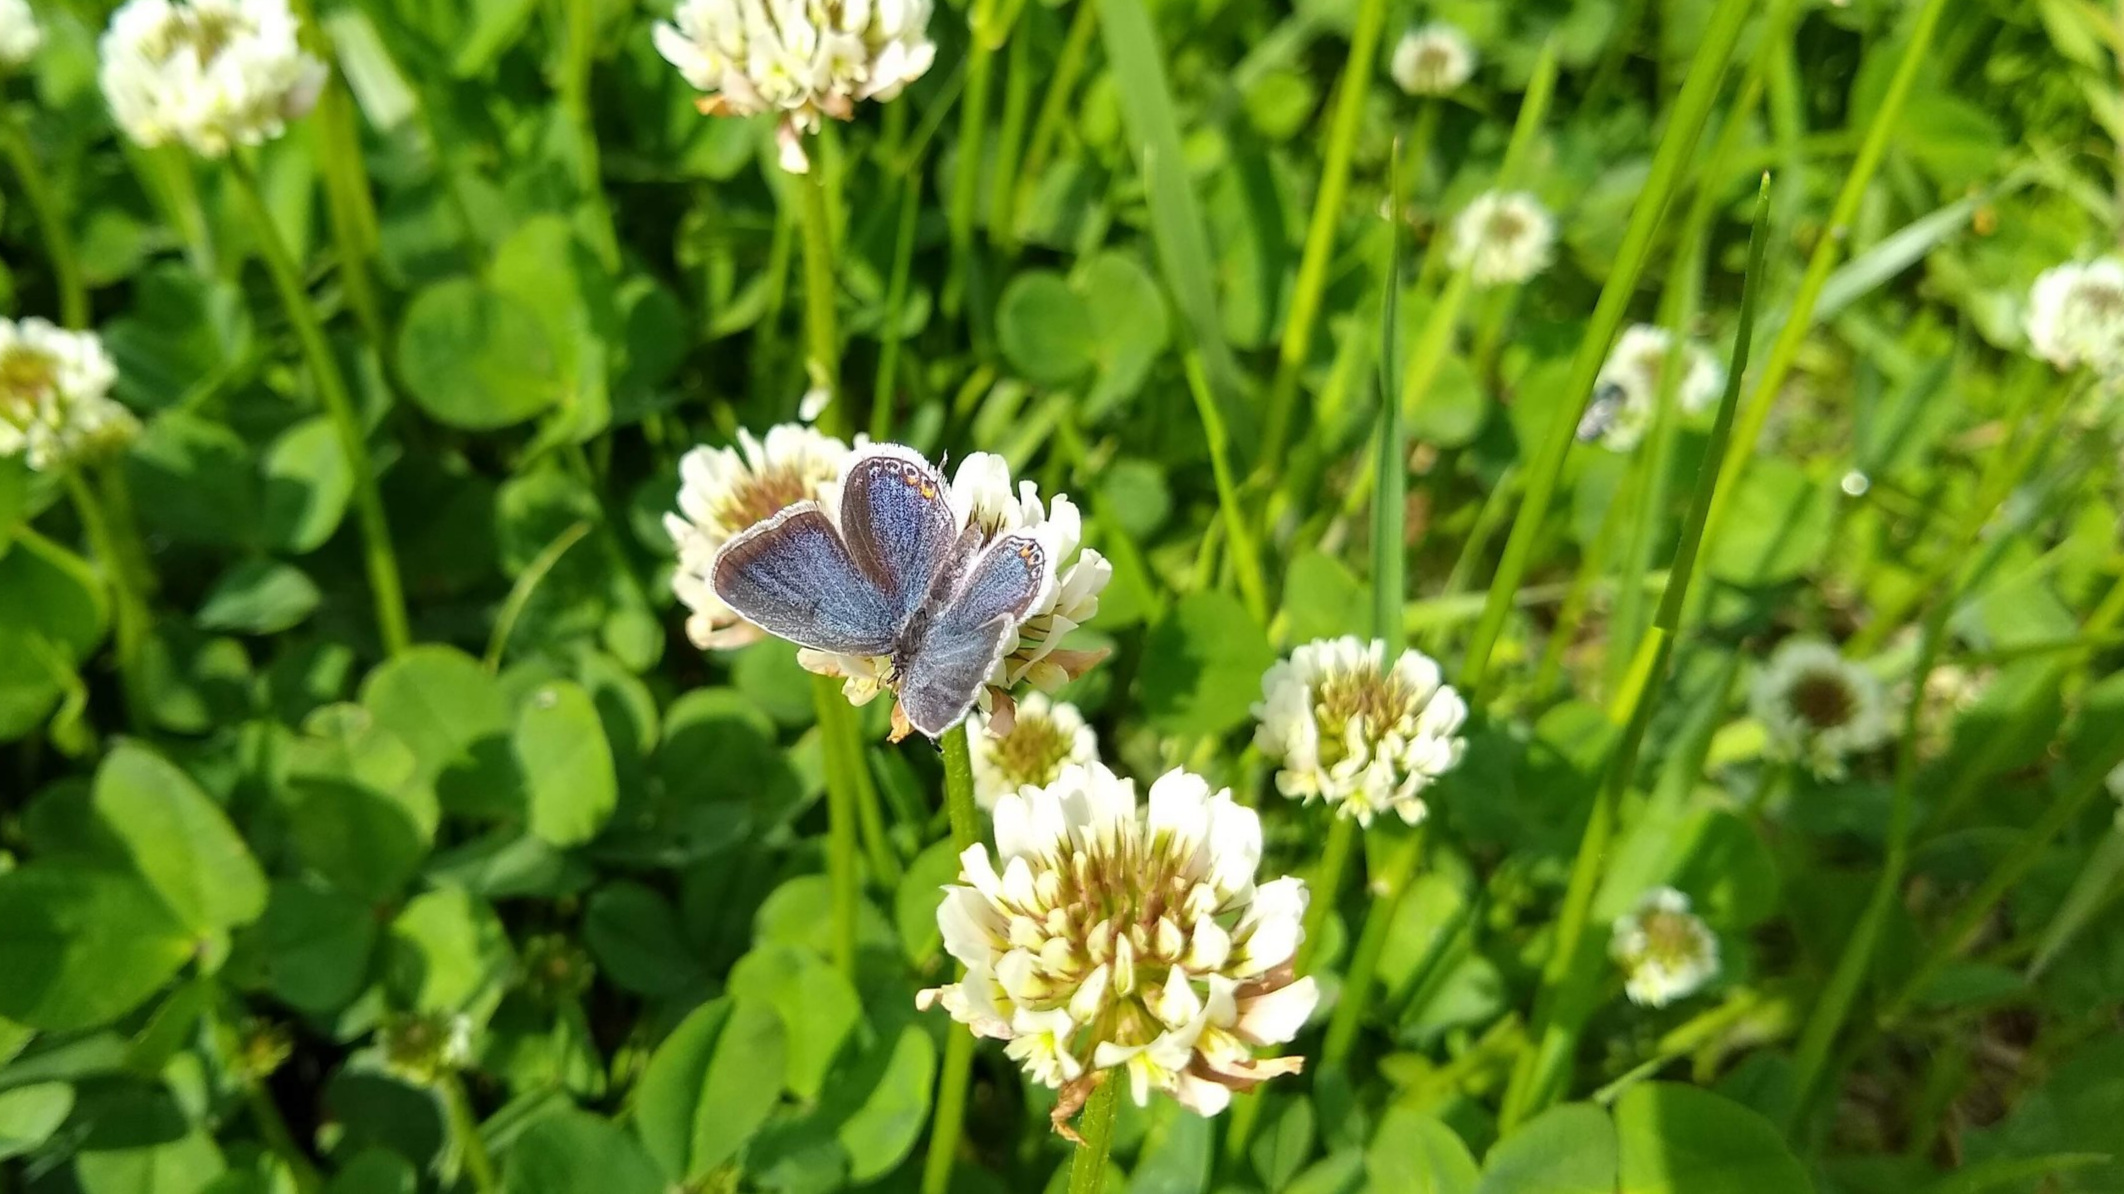 Eastern Tailed Blue Butterfly on white clover